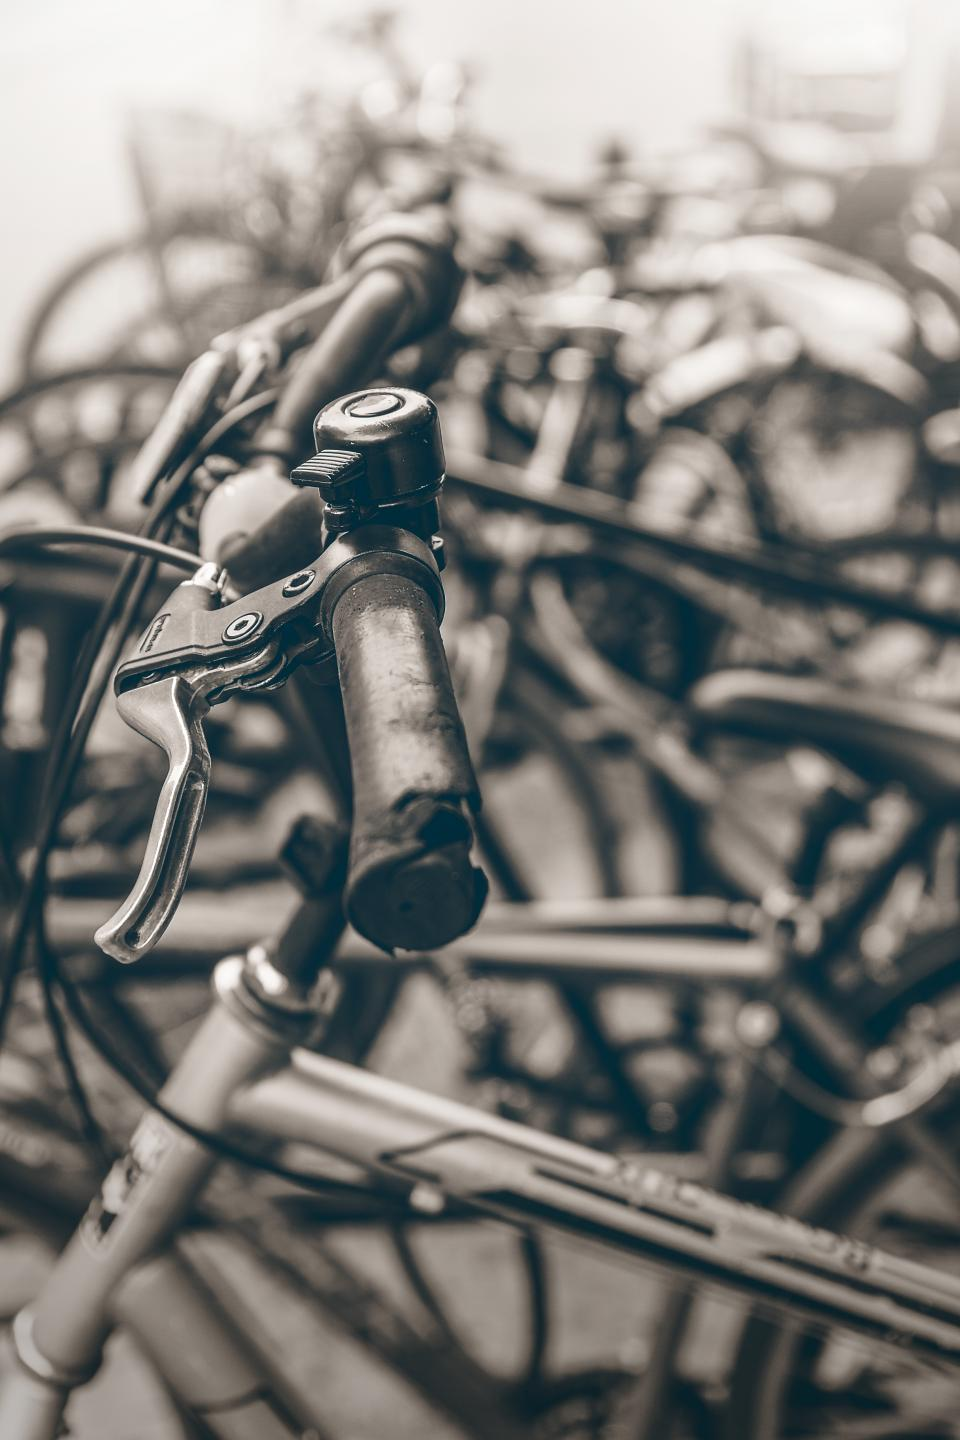 bicycles wheels gear black and white travel outdoor old wreck broken sports bokeh blur steel brakes handlebars pedals